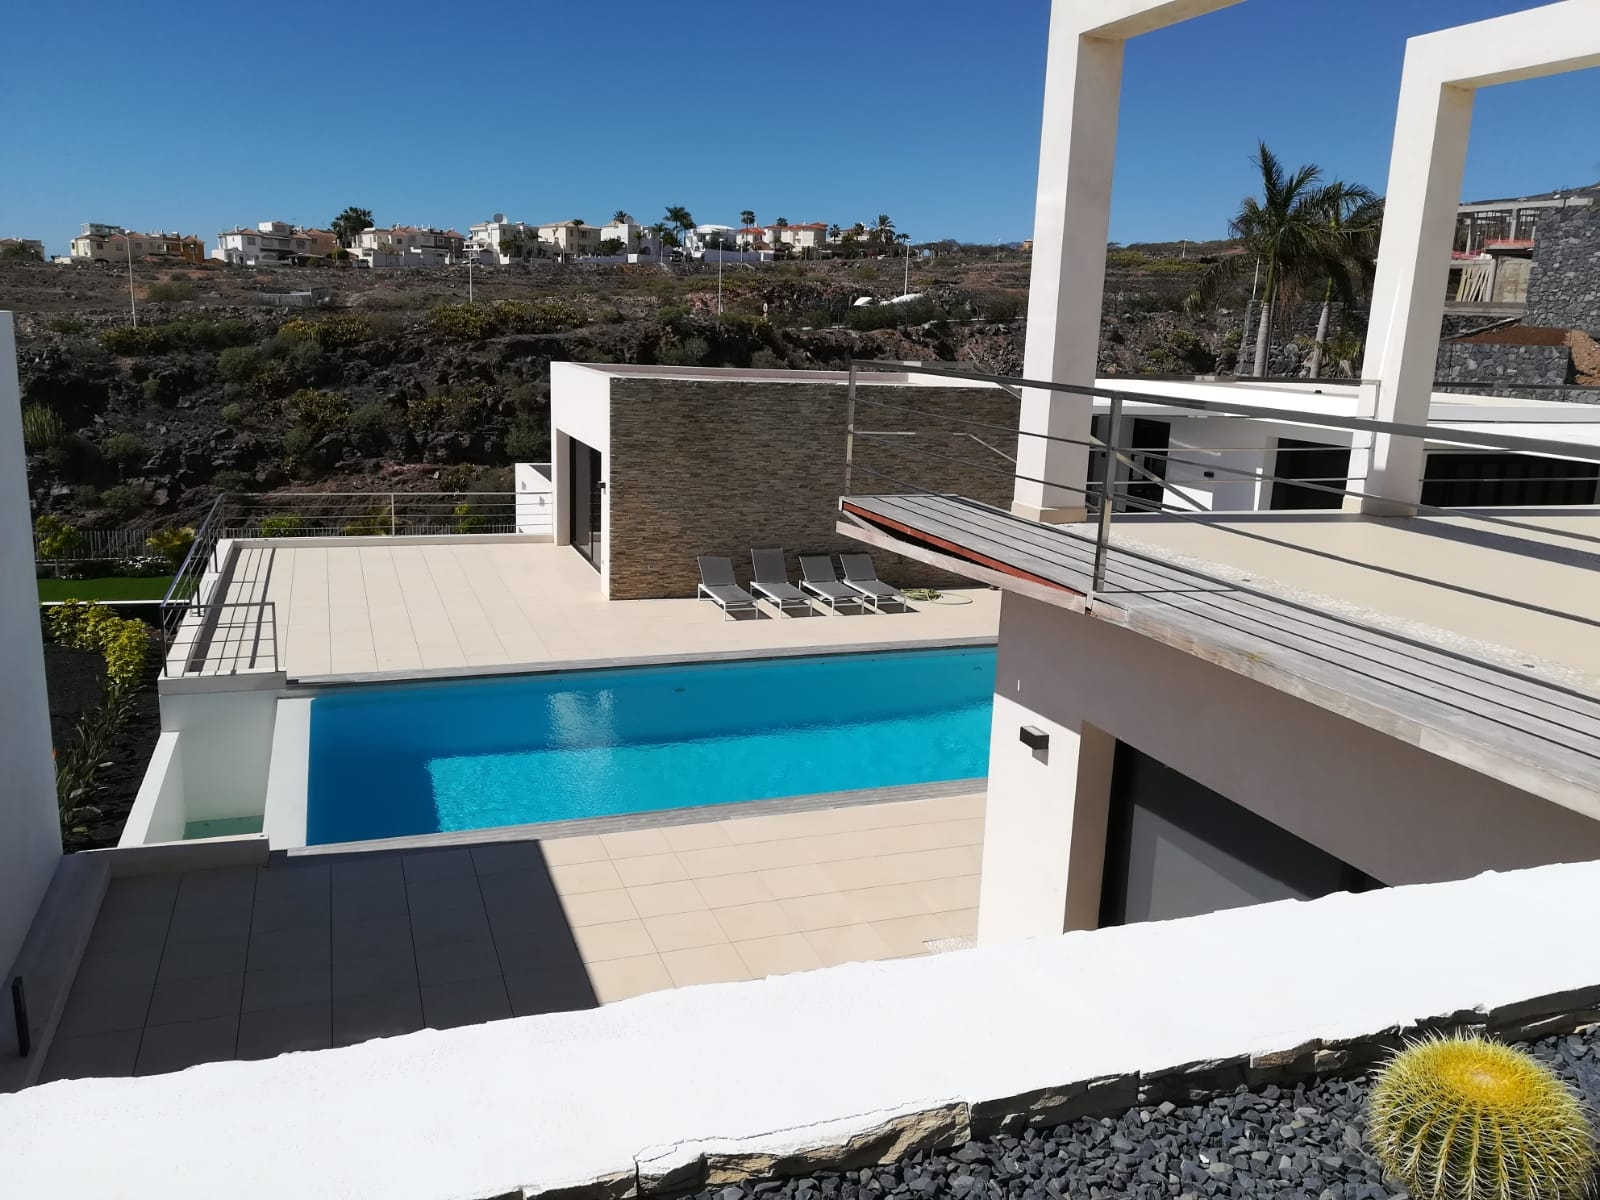 Properties for Sale in Tenerife, Canary Islands, Spain | SylkWayStar Real Estate. Luxury Villa Golf Costa Adeje. Image-24130